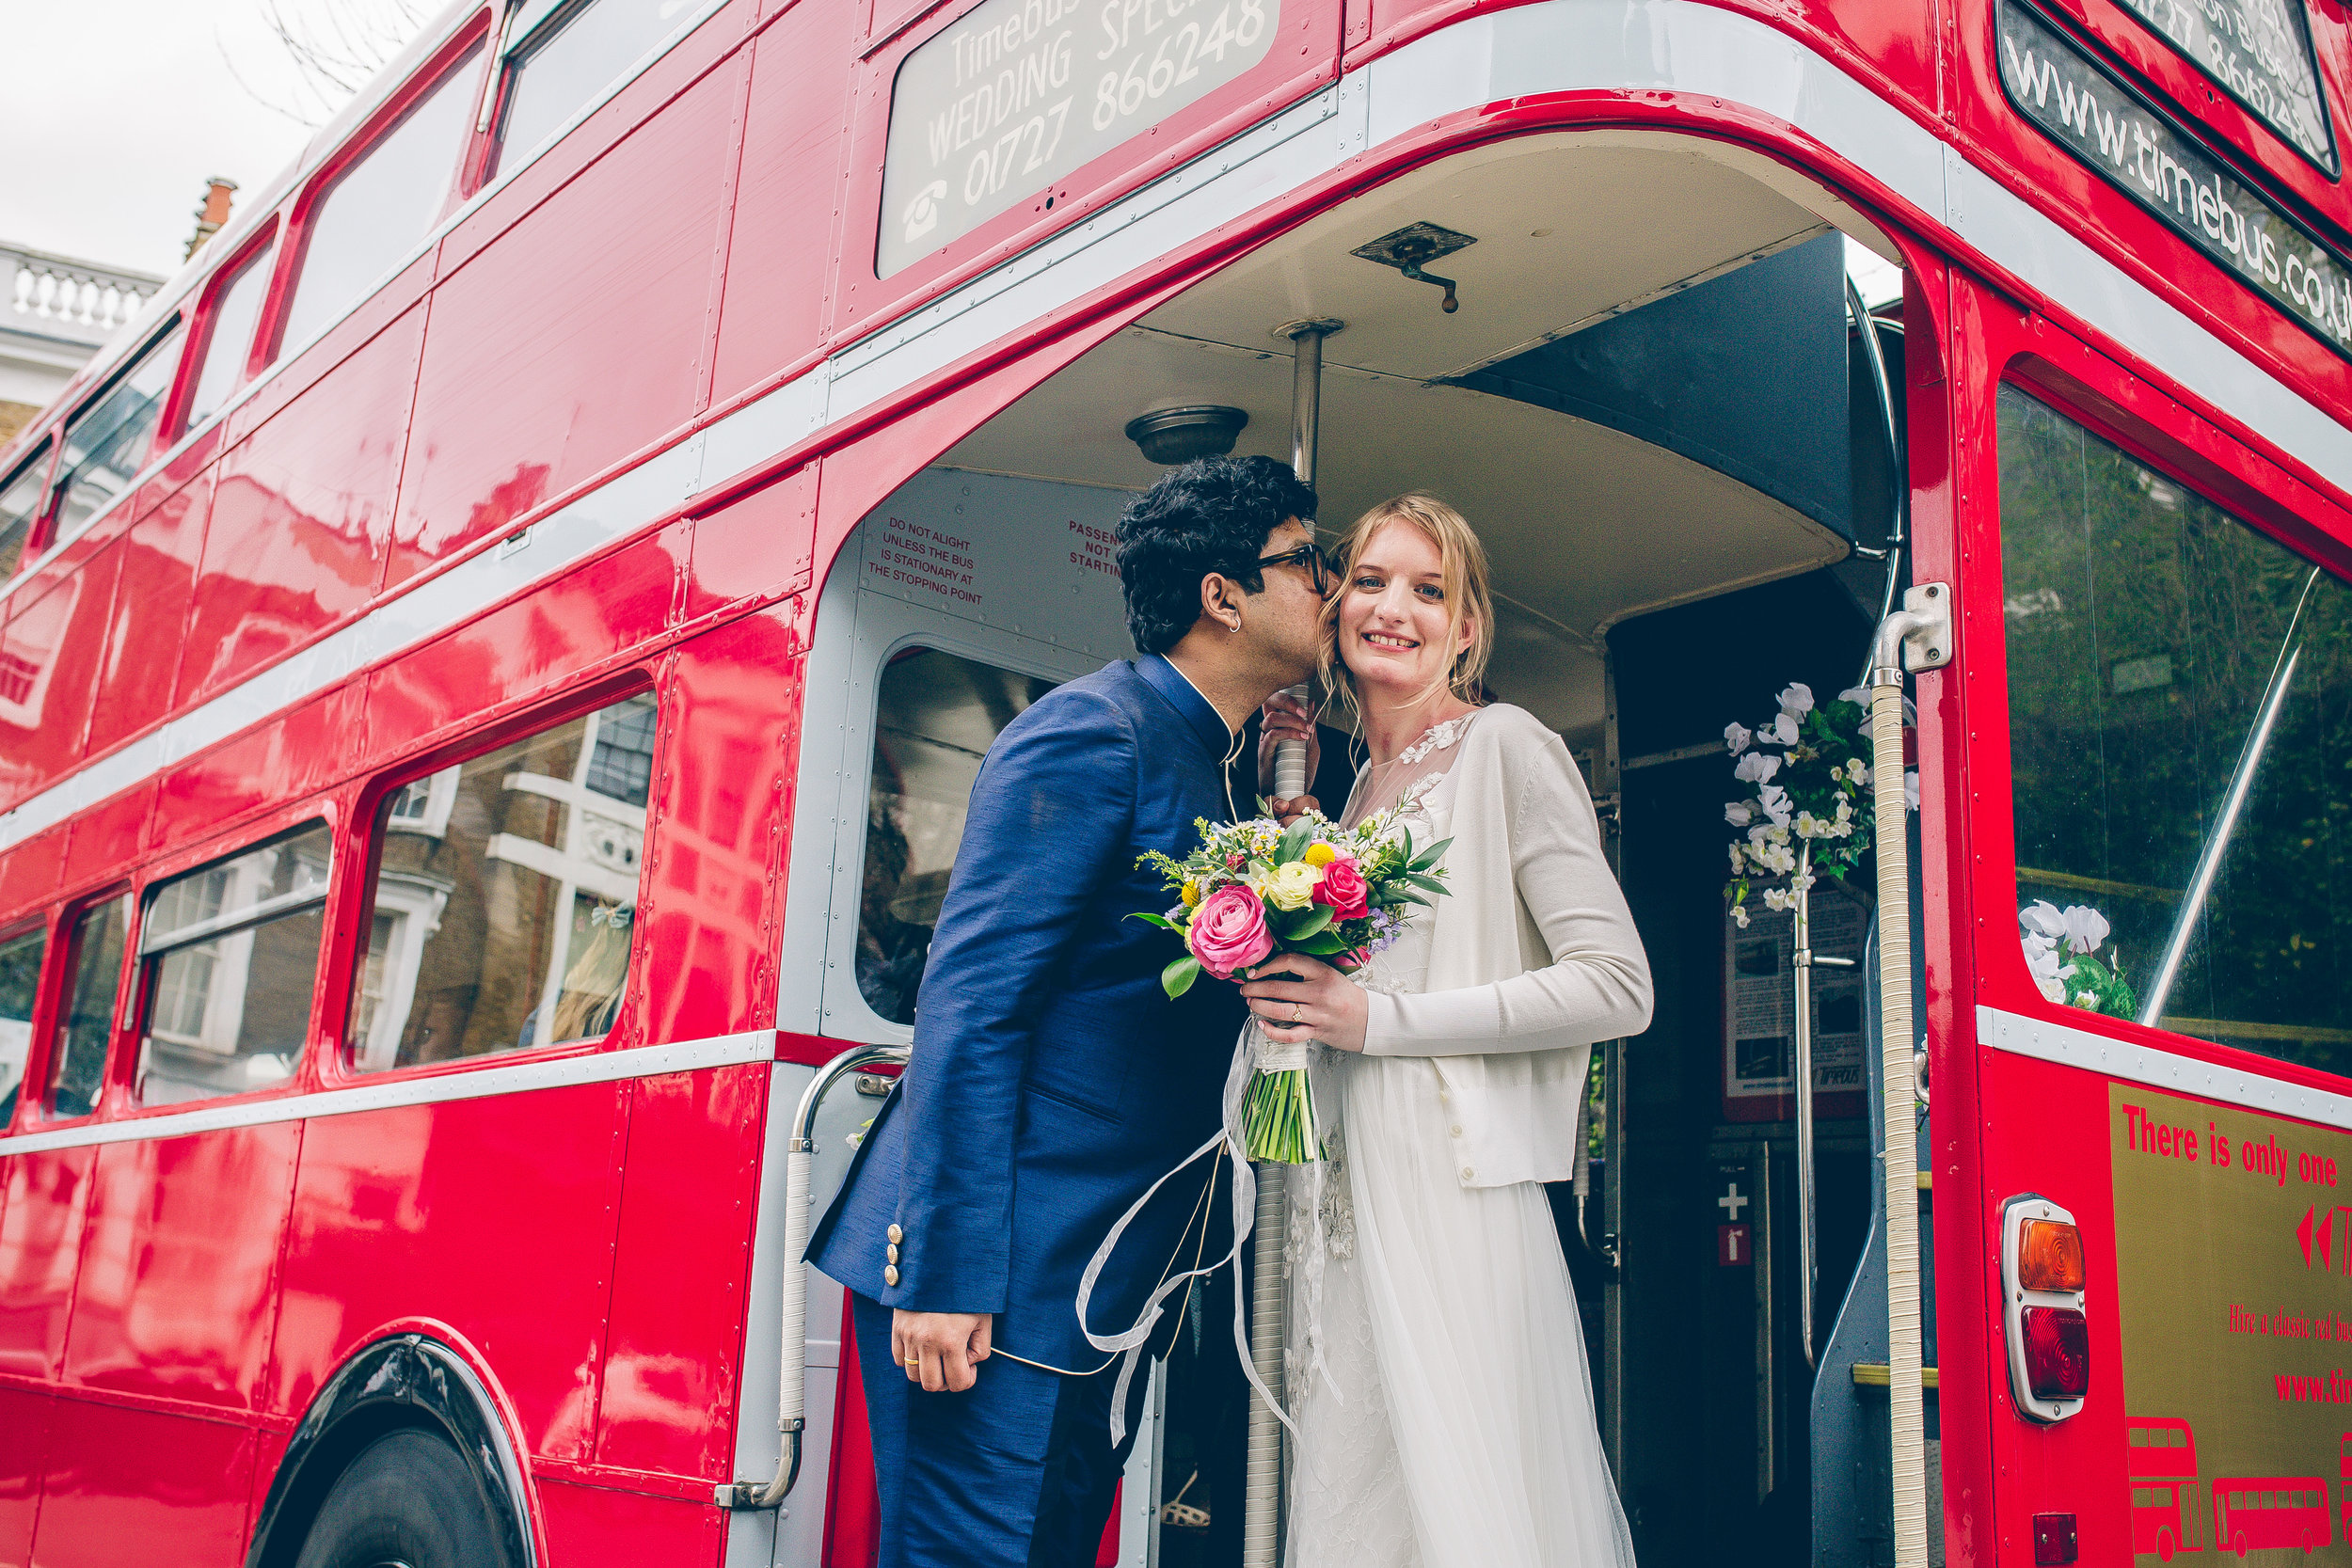 Sophie and Derick - That time I shot in a glorious church, rode a big red bus and visited The Wetlands, all in one day